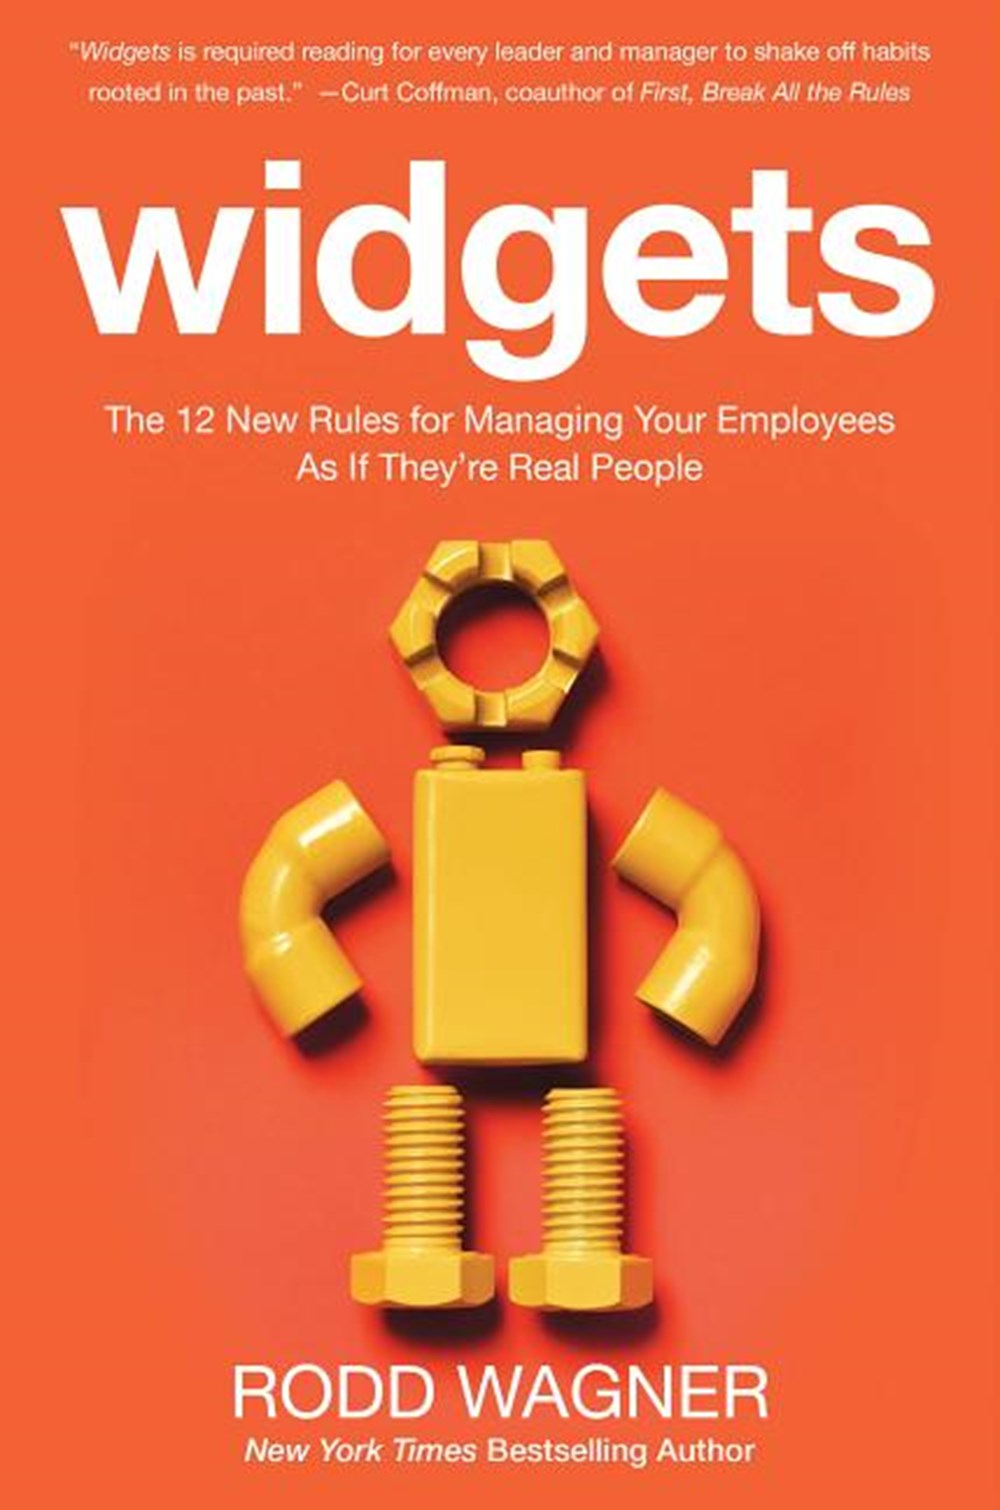 Widgets The 12 New Rules for Managing Your Employees as If They're Real People